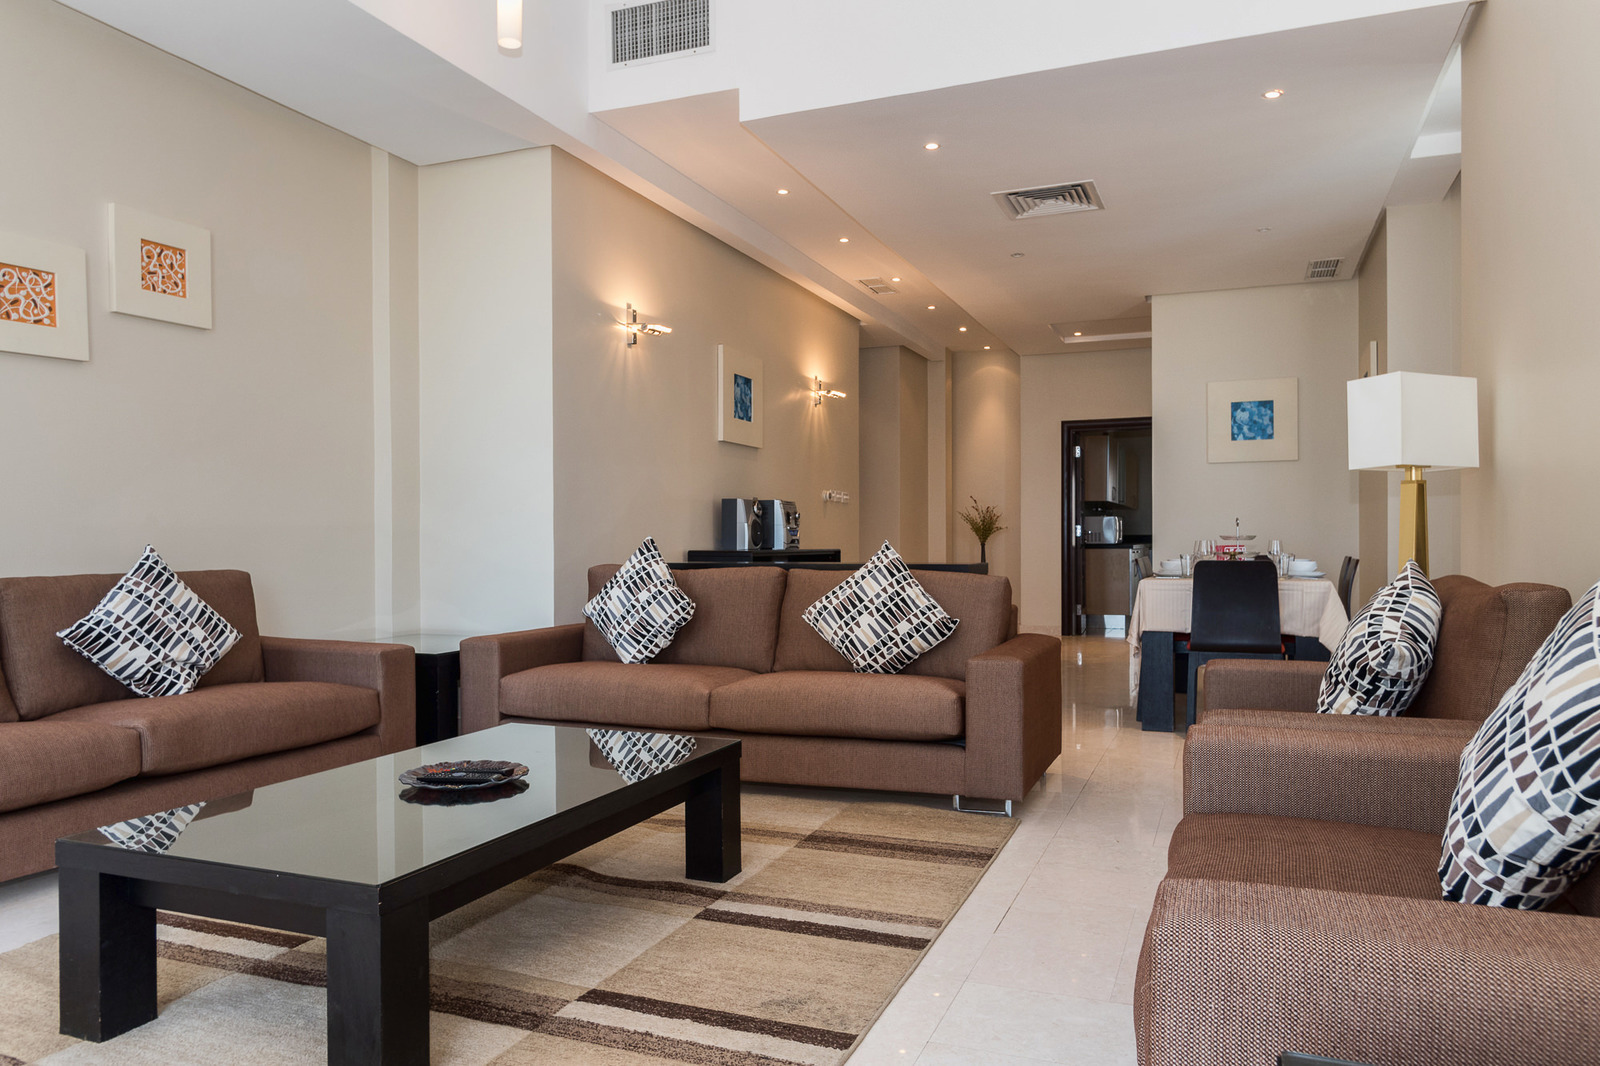 Fintas – great, furnished, three bedroom apartments